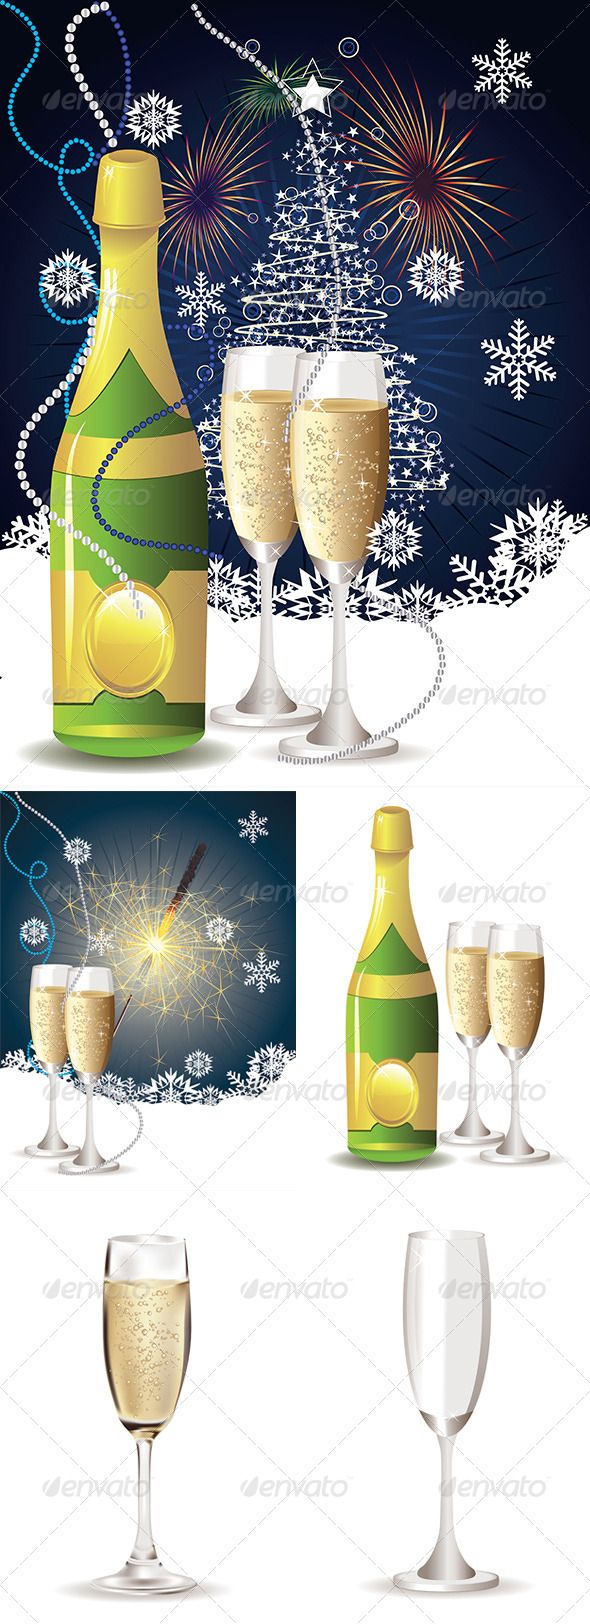 Card with Champagne